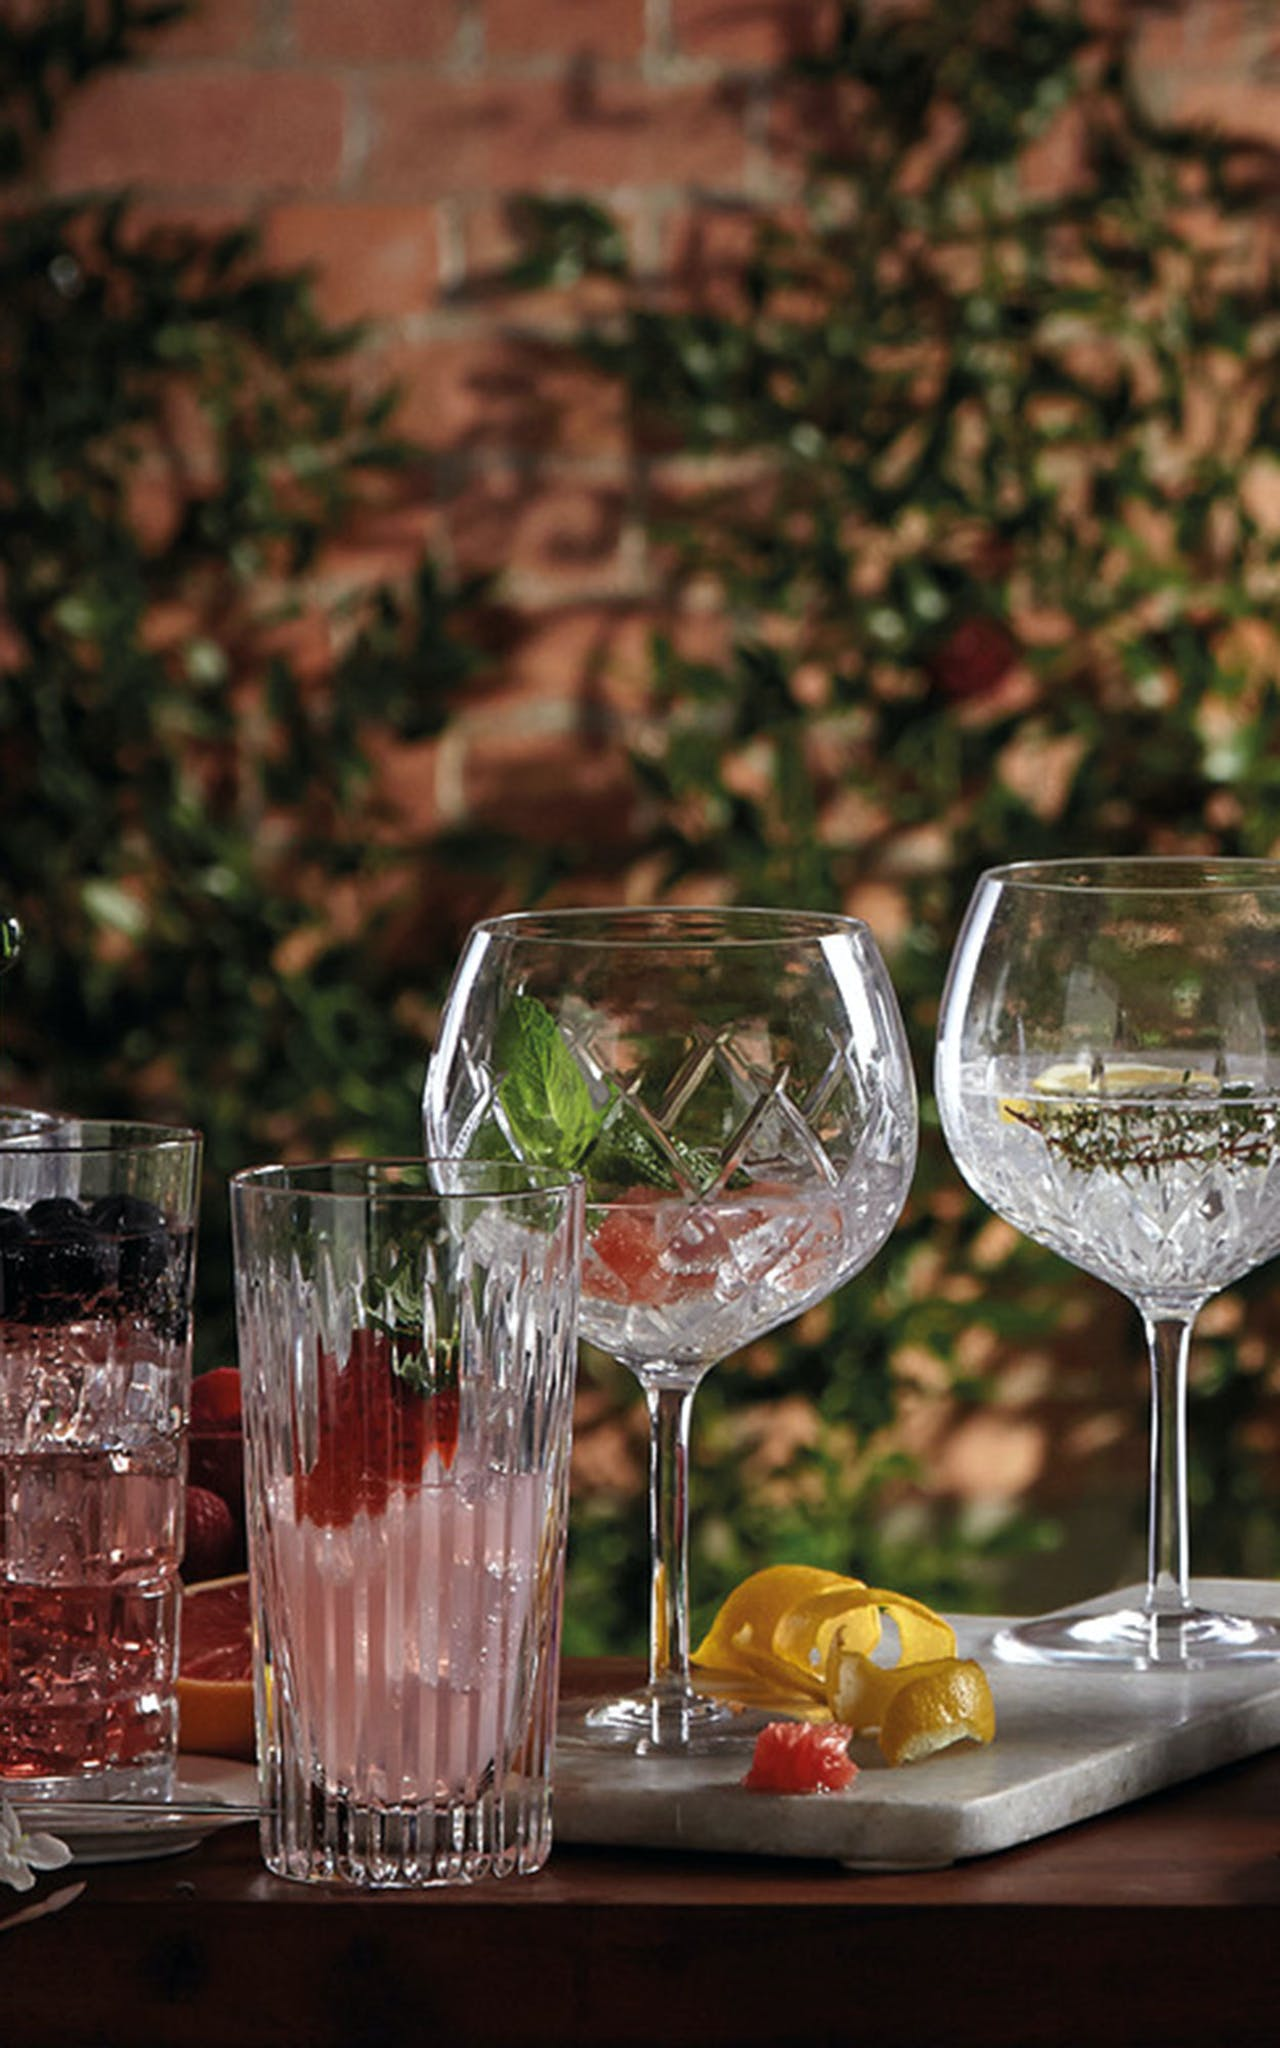 Find your perfect Gin glass with Waterford Crystals Gin Journeys. Shop the Range of Gin Balloons and Hiballs online at Kilkenny Shop.